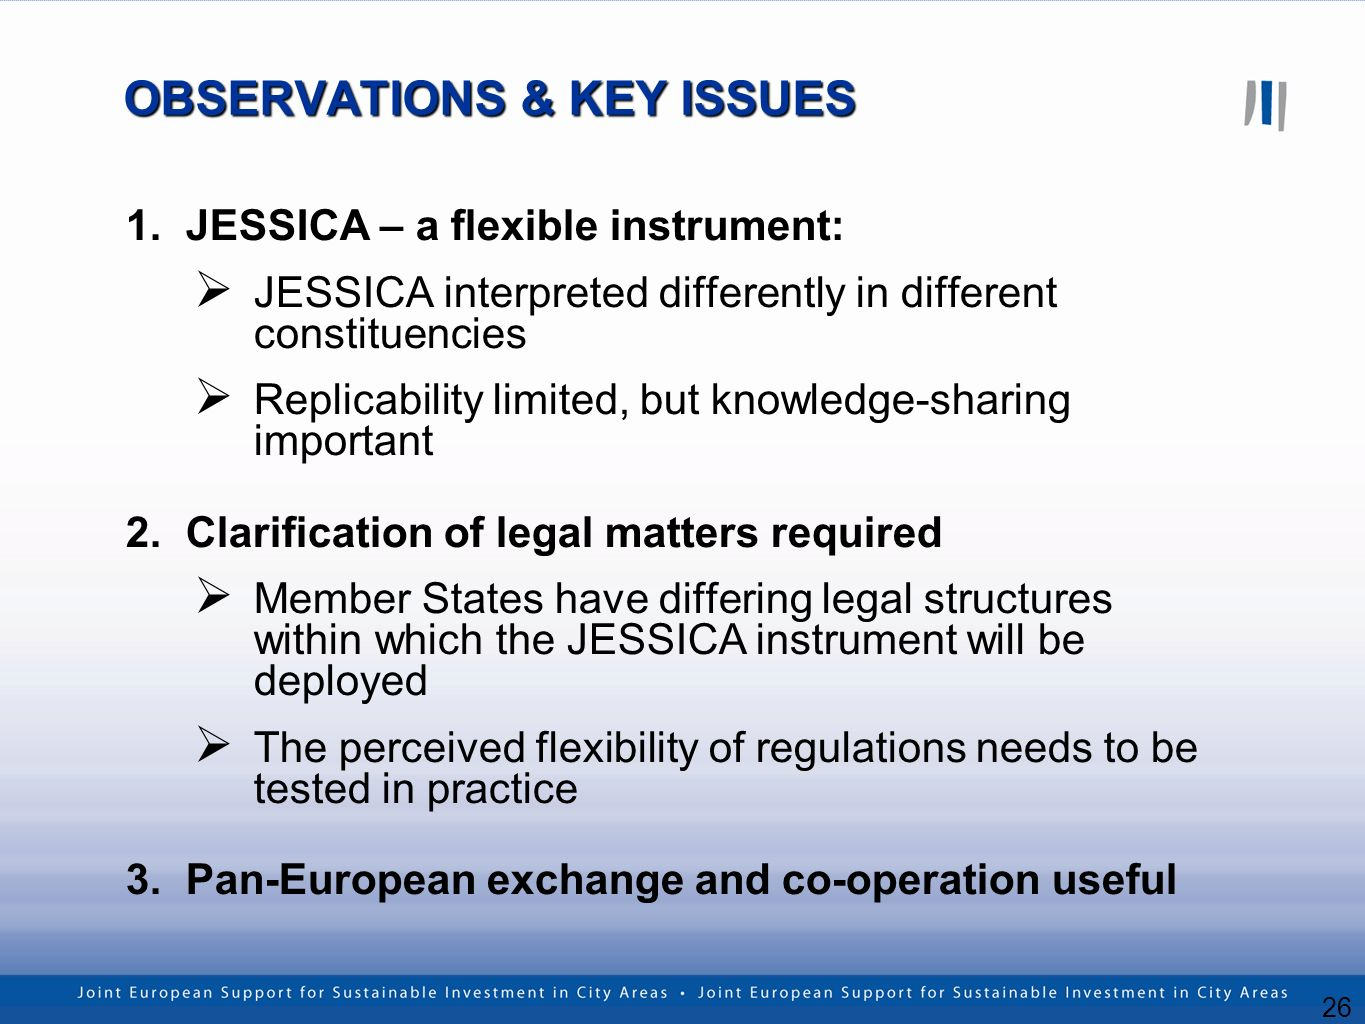 26 OBSERVATIONS & KEY ISSUES 1.JESSICA – a flexible instrument: JESSICA interpreted differently in different constituencies Replicability limited, but knowledge-sharing important 2.Clarification of legal matters required Member States have differing legal structures within which the JESSICA instrument will be deployed The perceived flexibility of regulations needs to be tested in practice 3.Pan-European exchange and co-operation useful